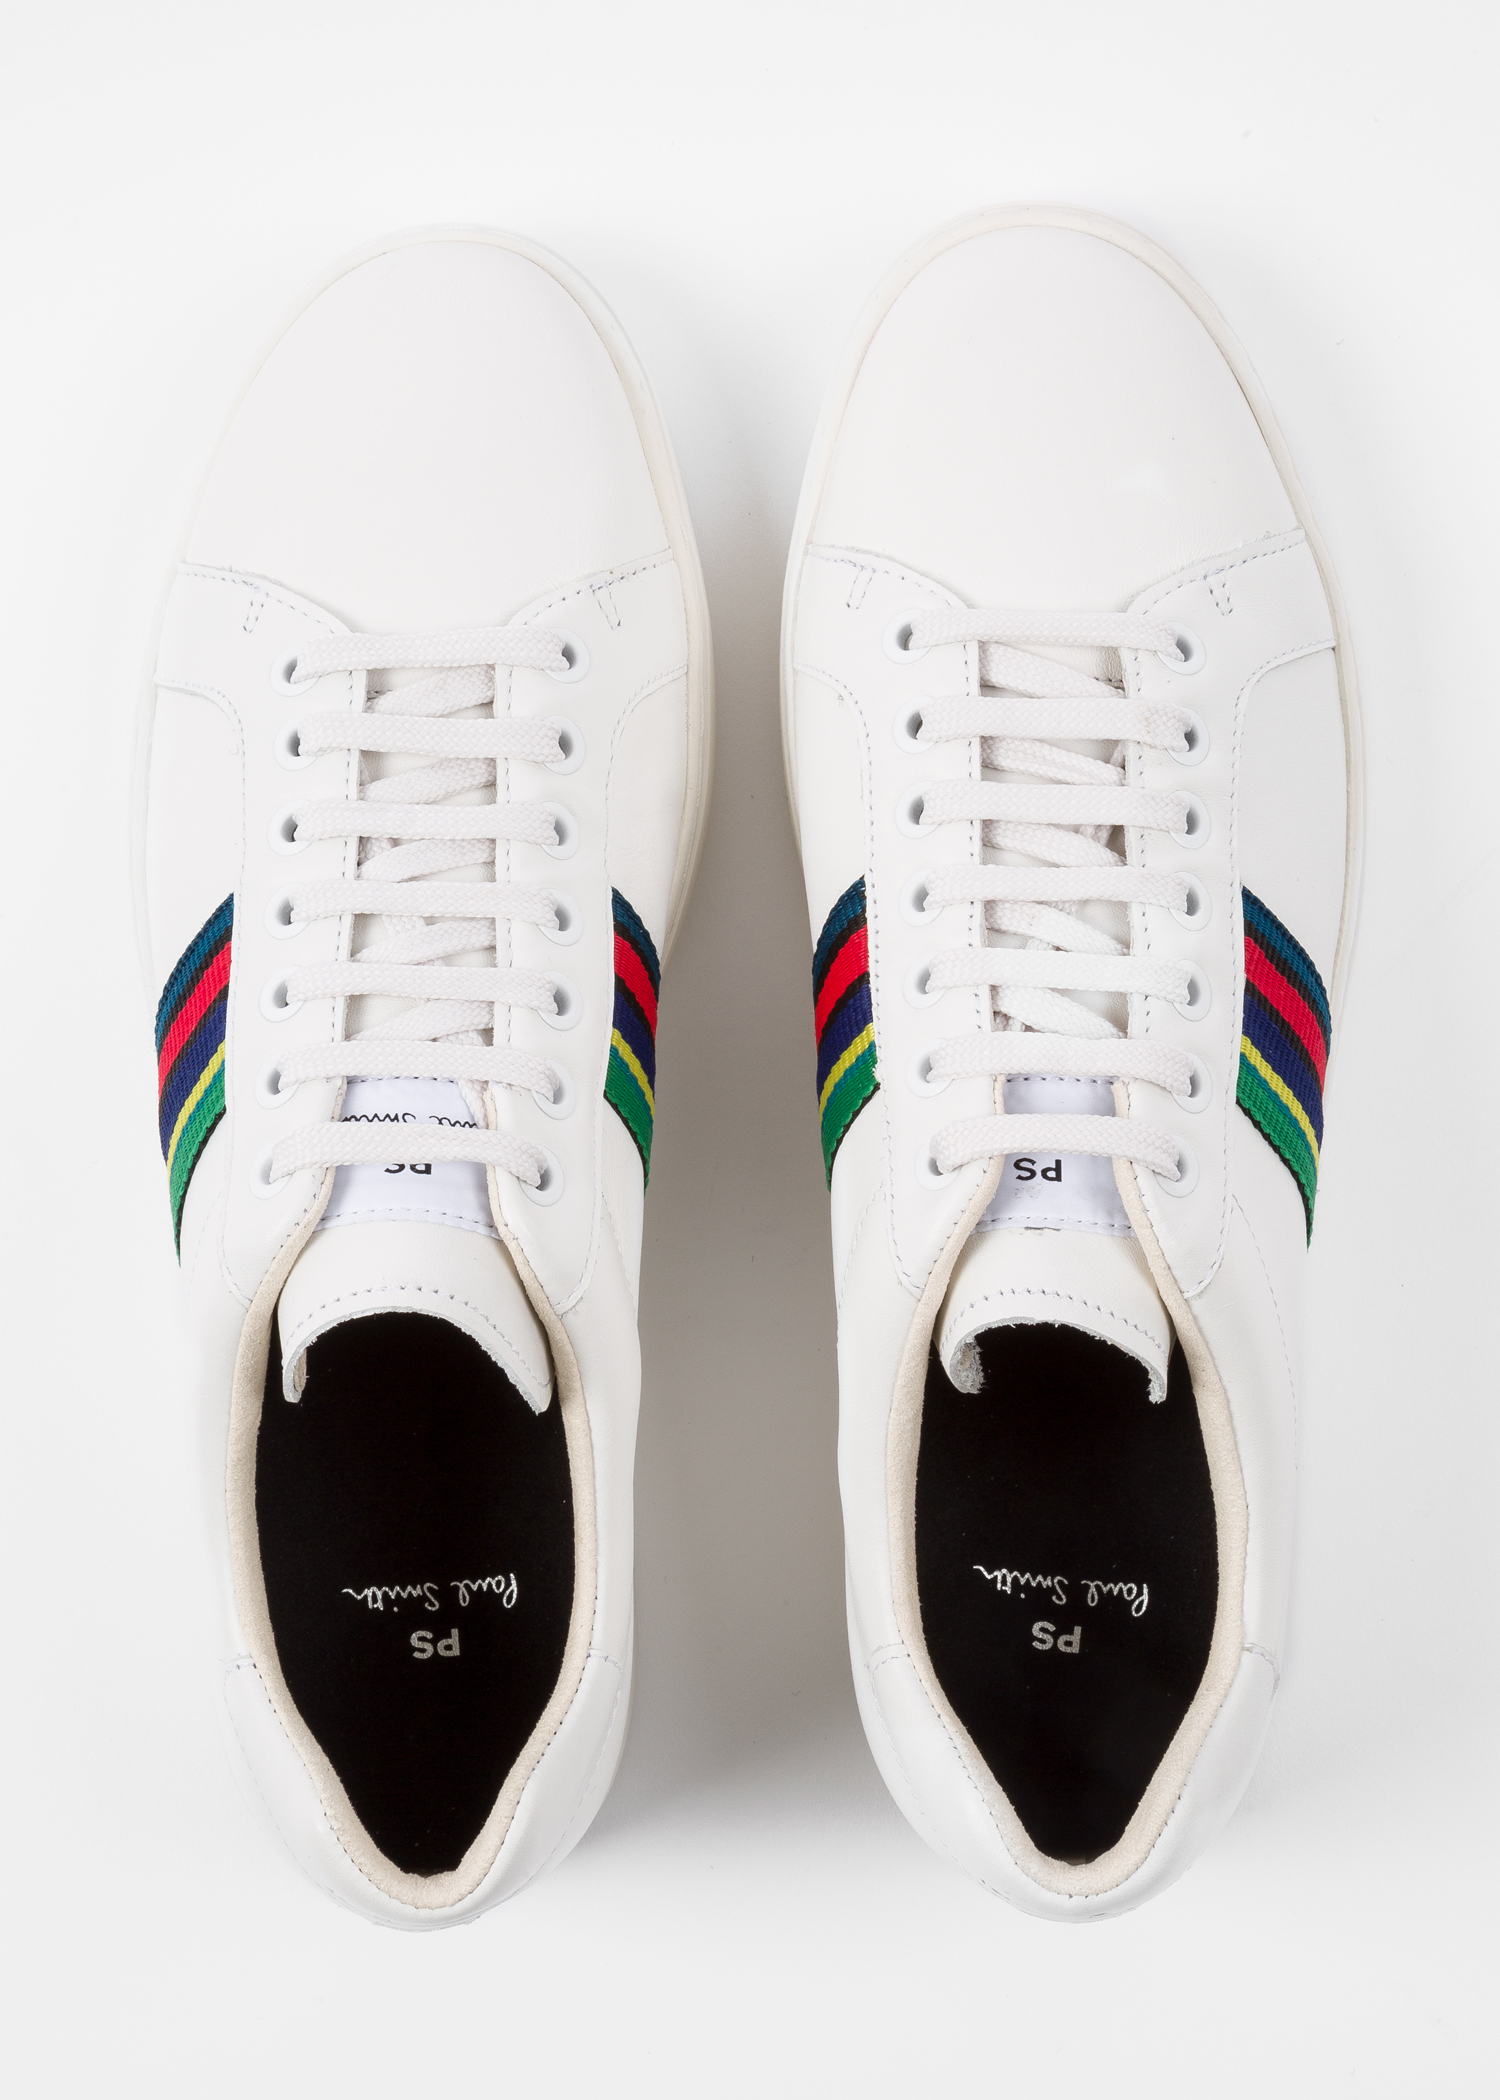 9ee6518c92f Men's White Calf Leather 'Lapin' Trainers - Paul Smith Asia